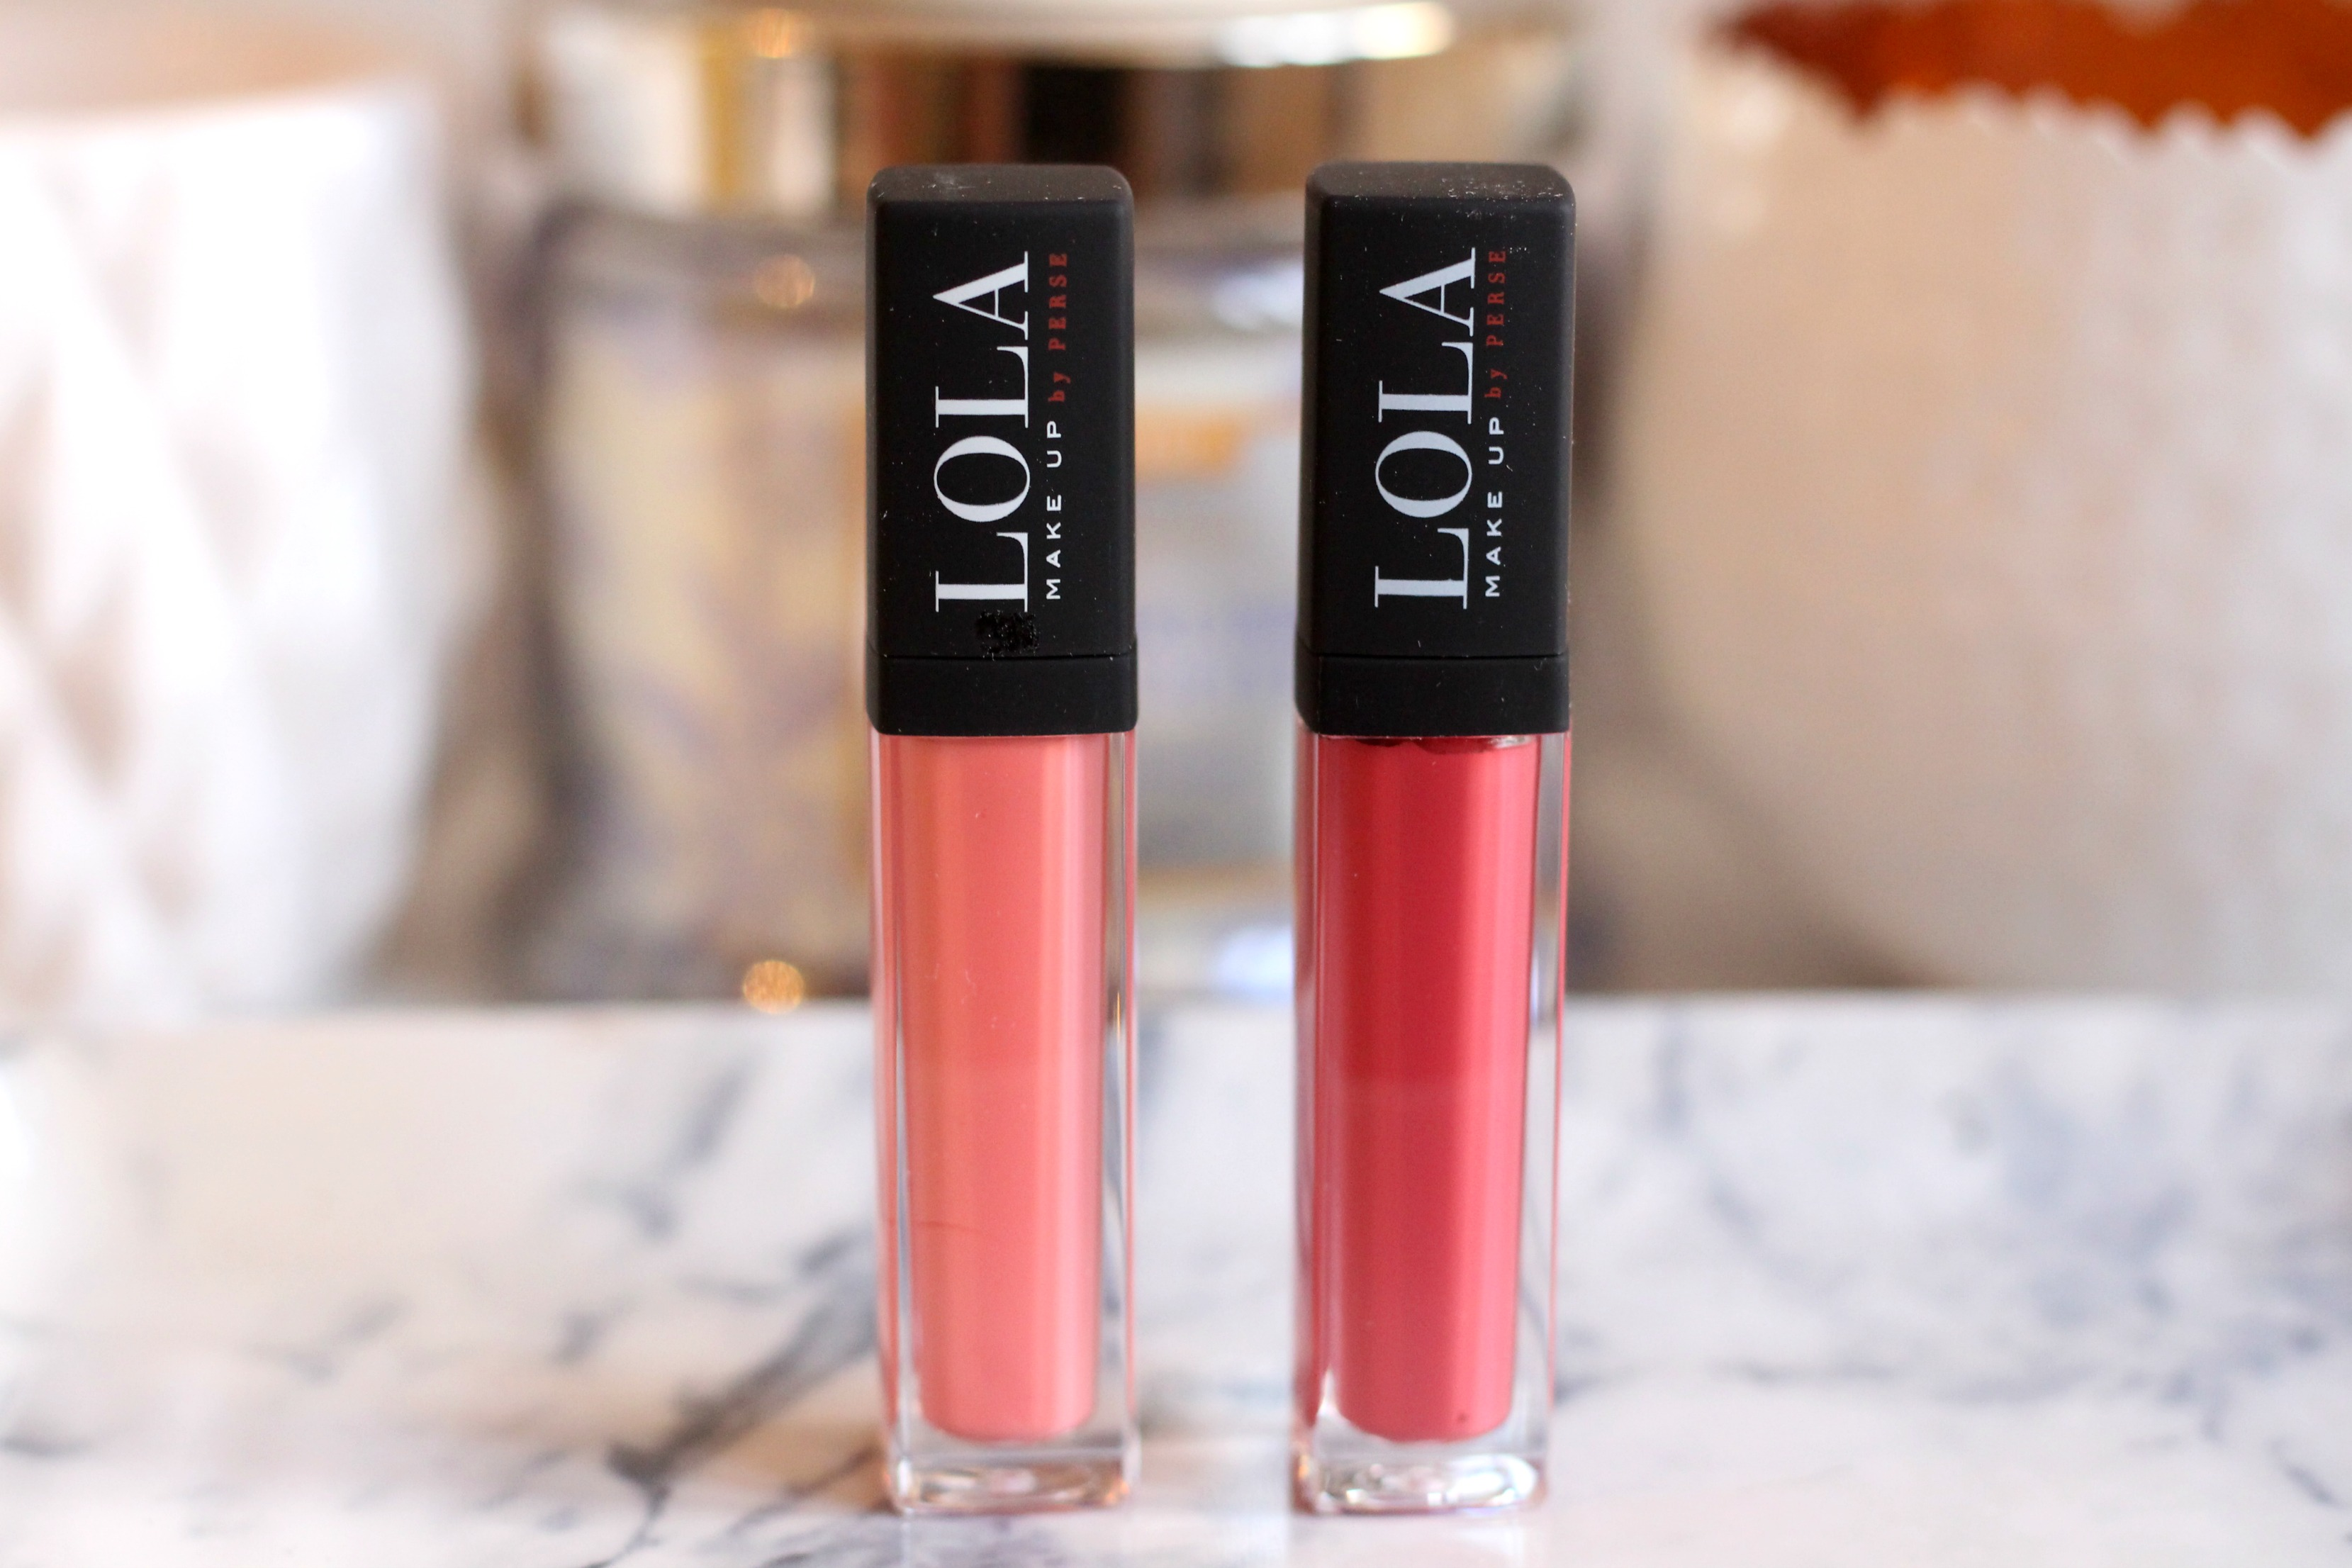 Lola Makeup Lip Glosses